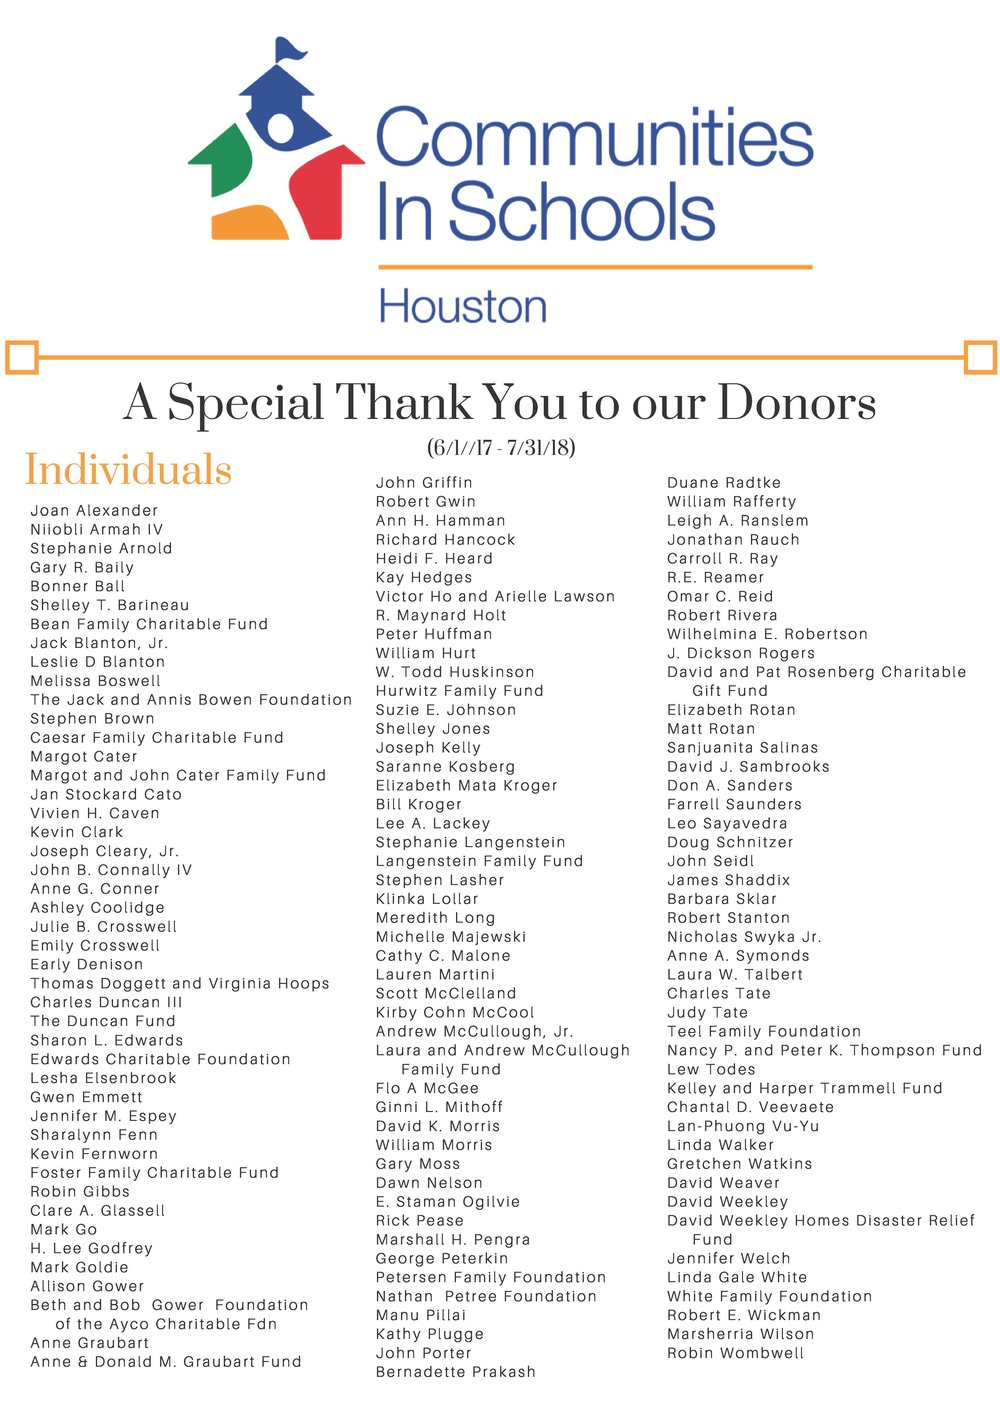 Donors list 6-1-17to7-31-18_Page_1.jpg